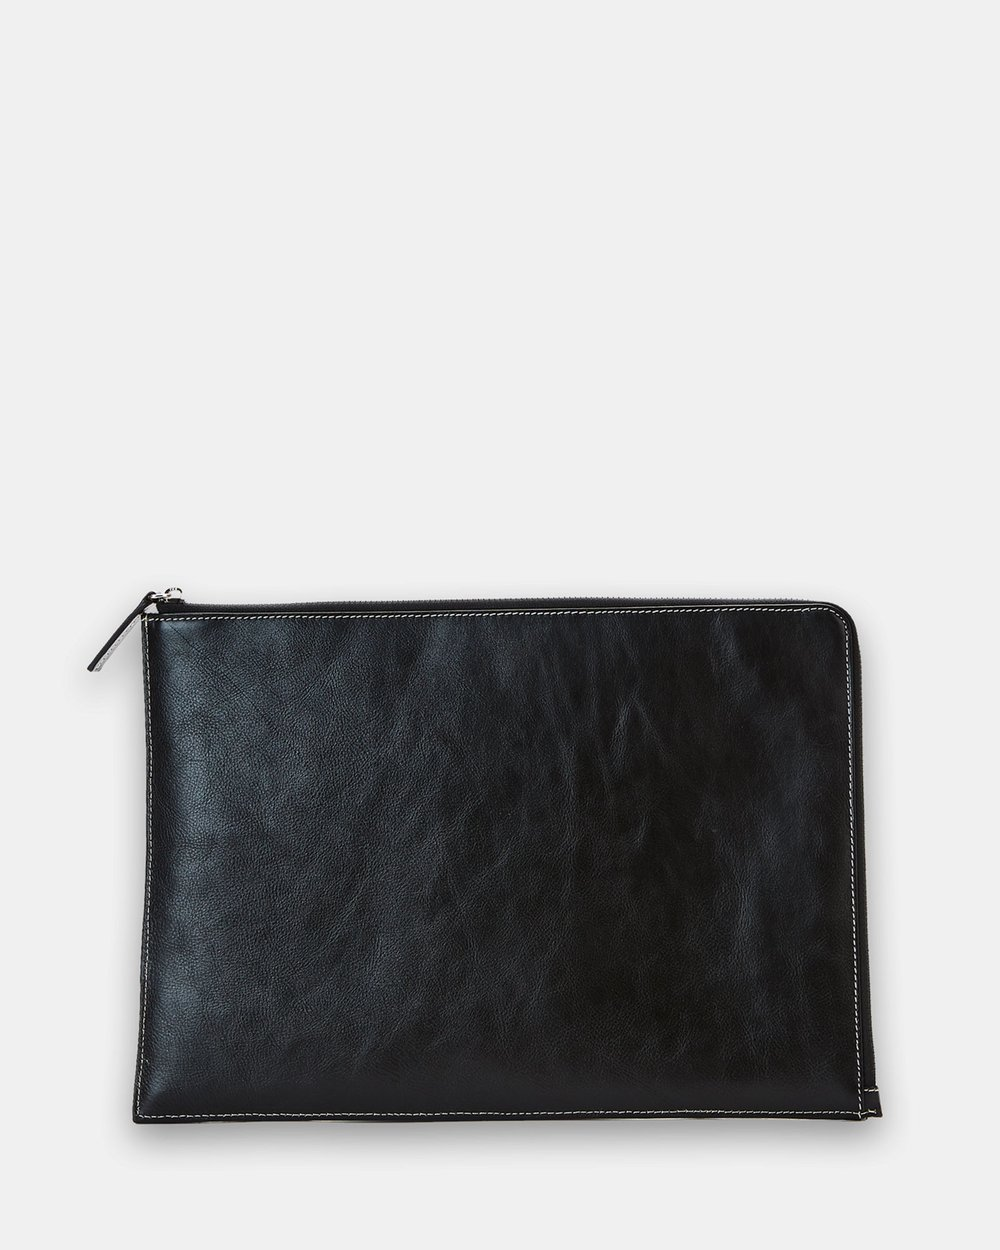 Slim Black Leather Laptop Sleeve